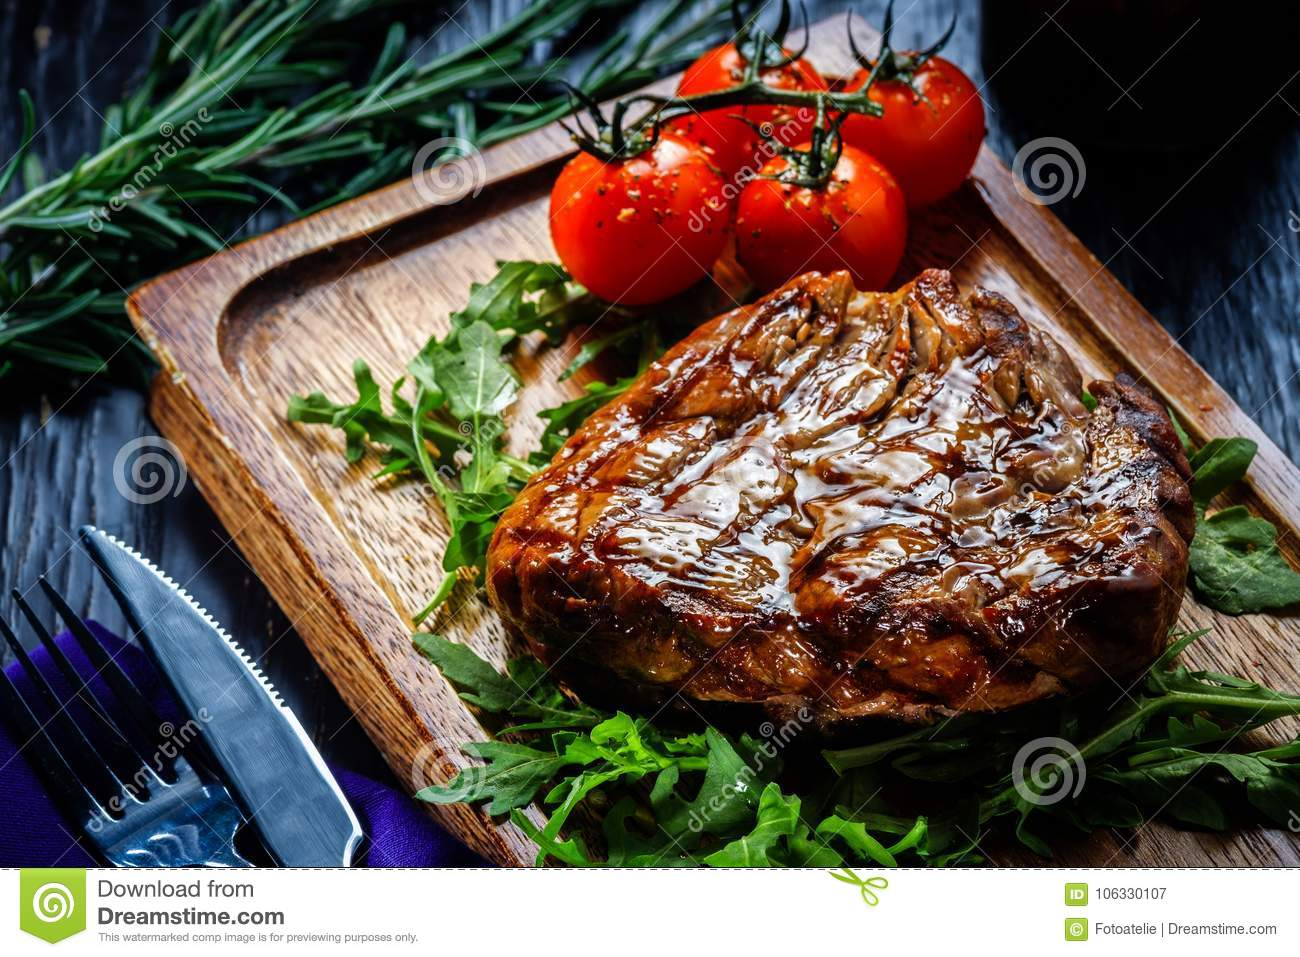 Juicy portions of grilled fillet steak served with tomatoes and